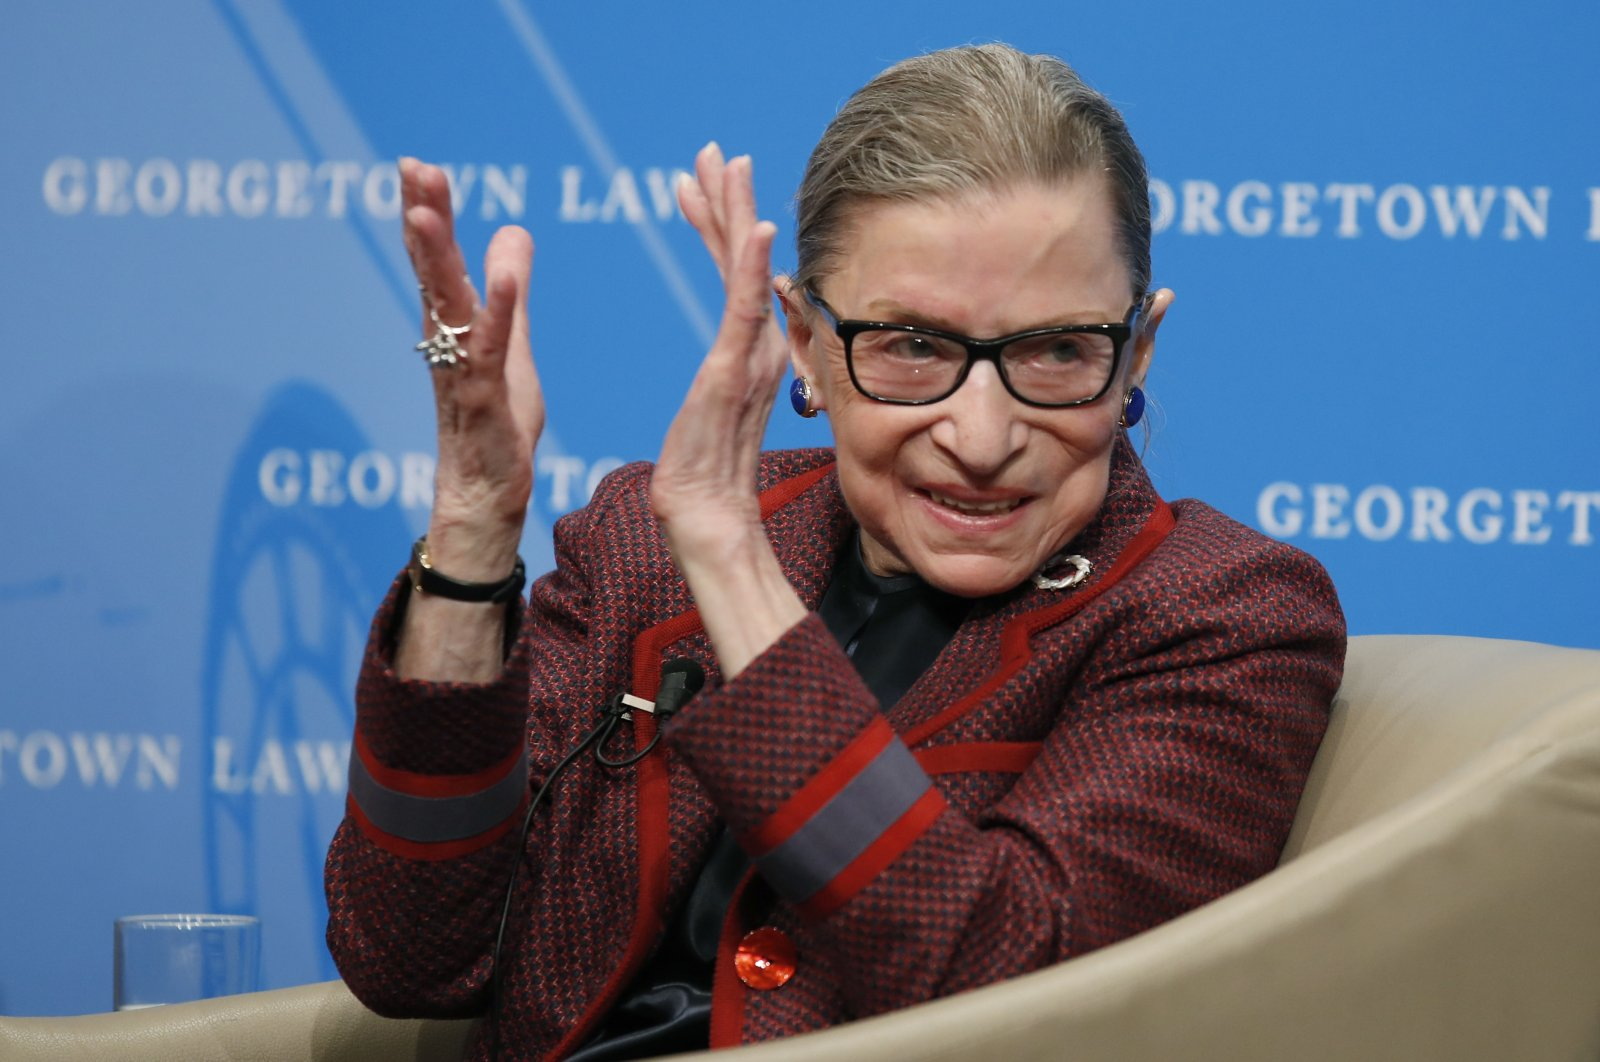 In this April 6, 2018, file photo, Supreme Court Justice Ruth Bader Ginsburg applauds after a performance in her honor after she spoke about her life and work during a discussion at Georgetown Law School in Washington. (AP Photo)